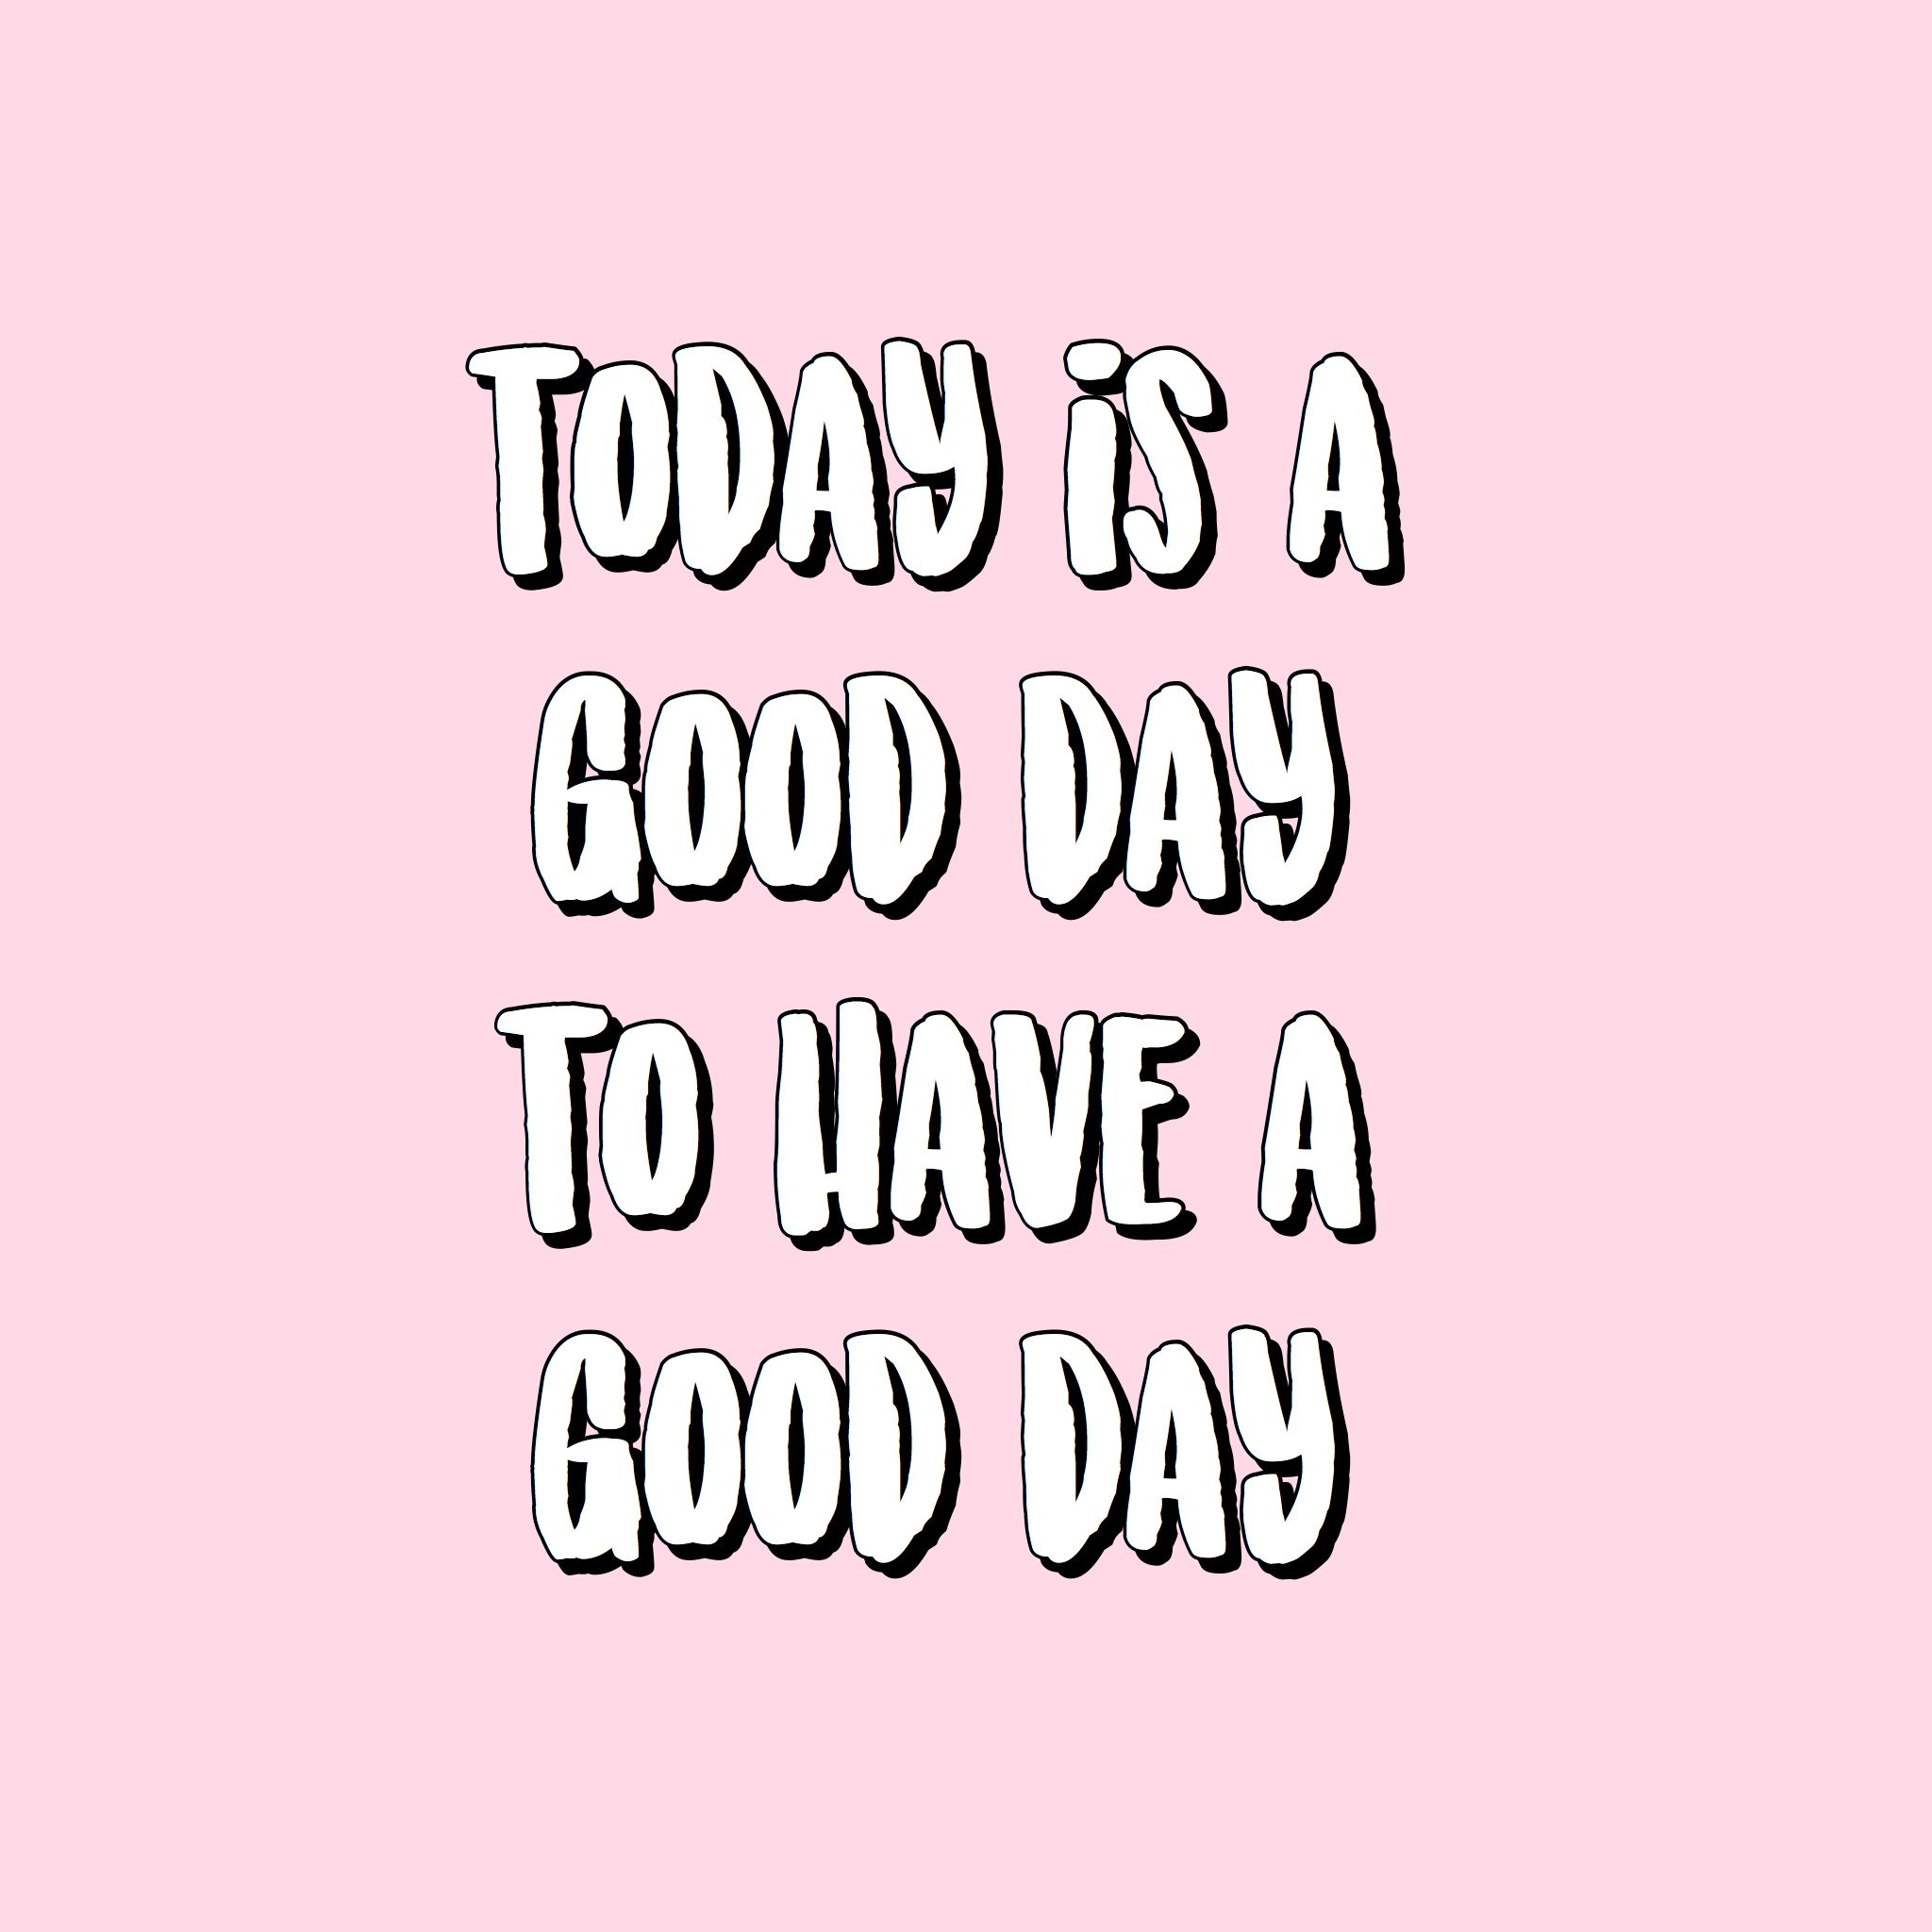 Today Is A Good Day To Have A Good Day Wallpaper Background Iphone